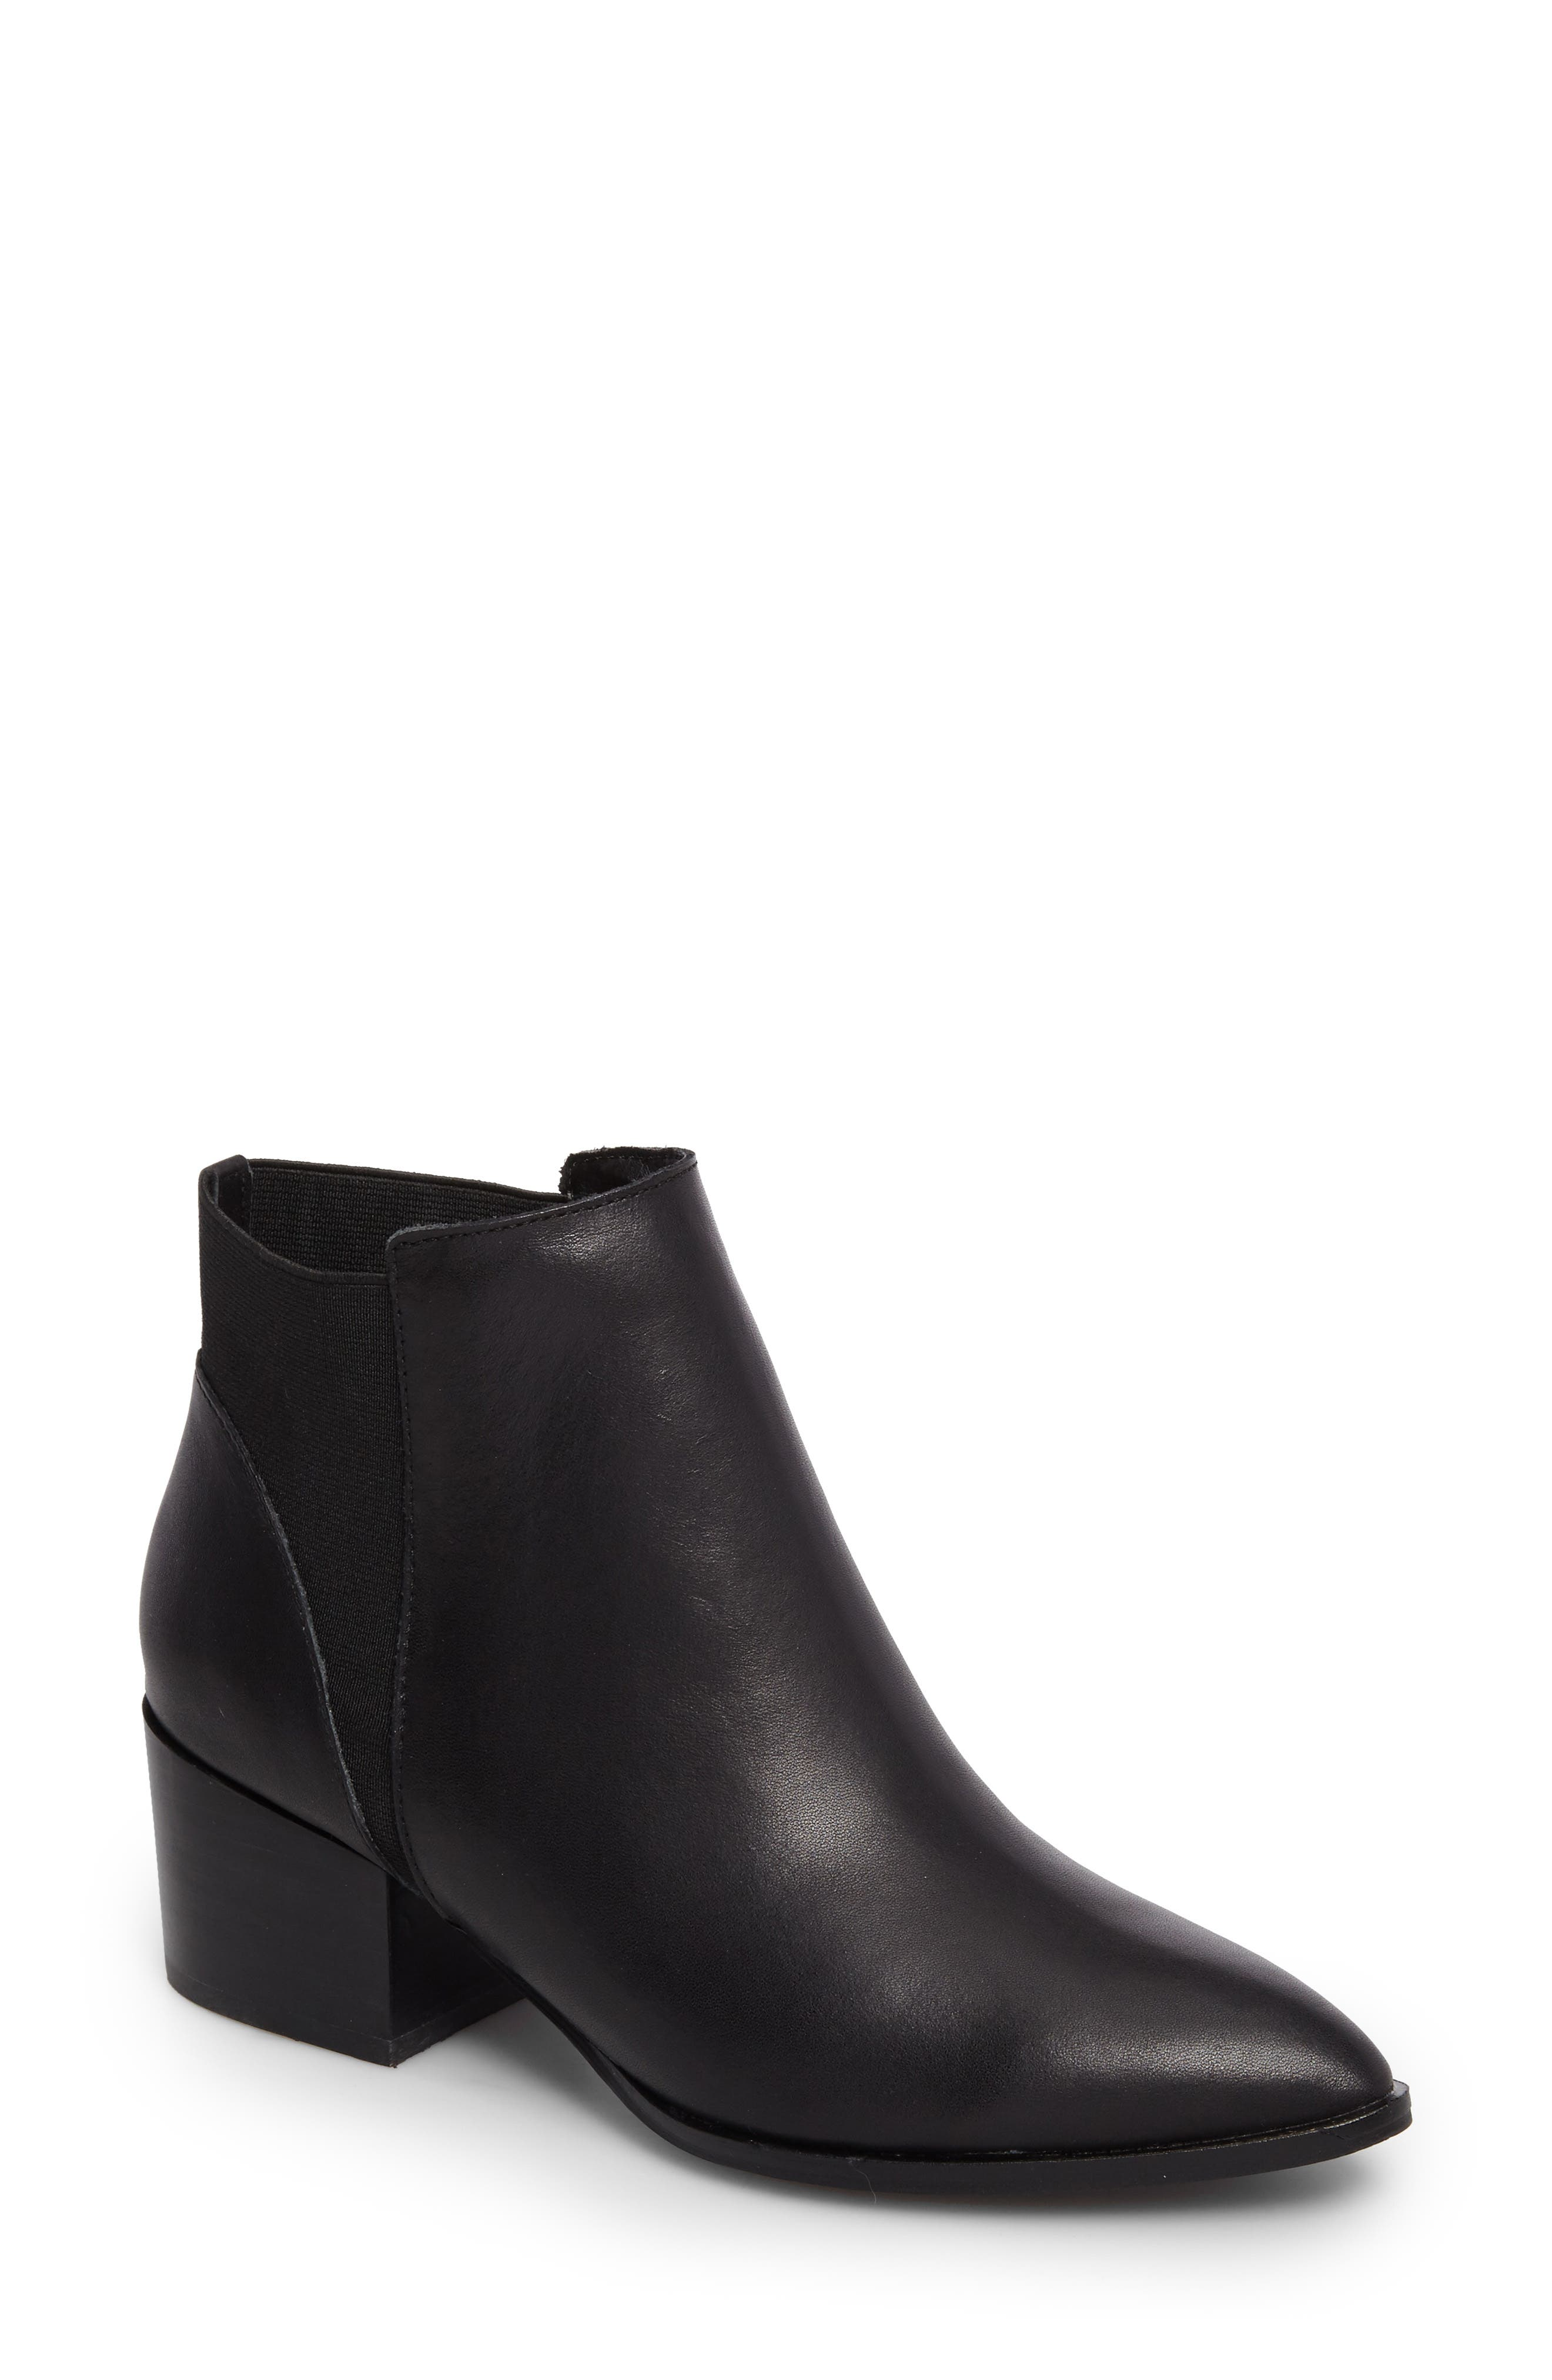 Alternate Image 1 Selected - Chinese Laundry Finn Bootie (Women)